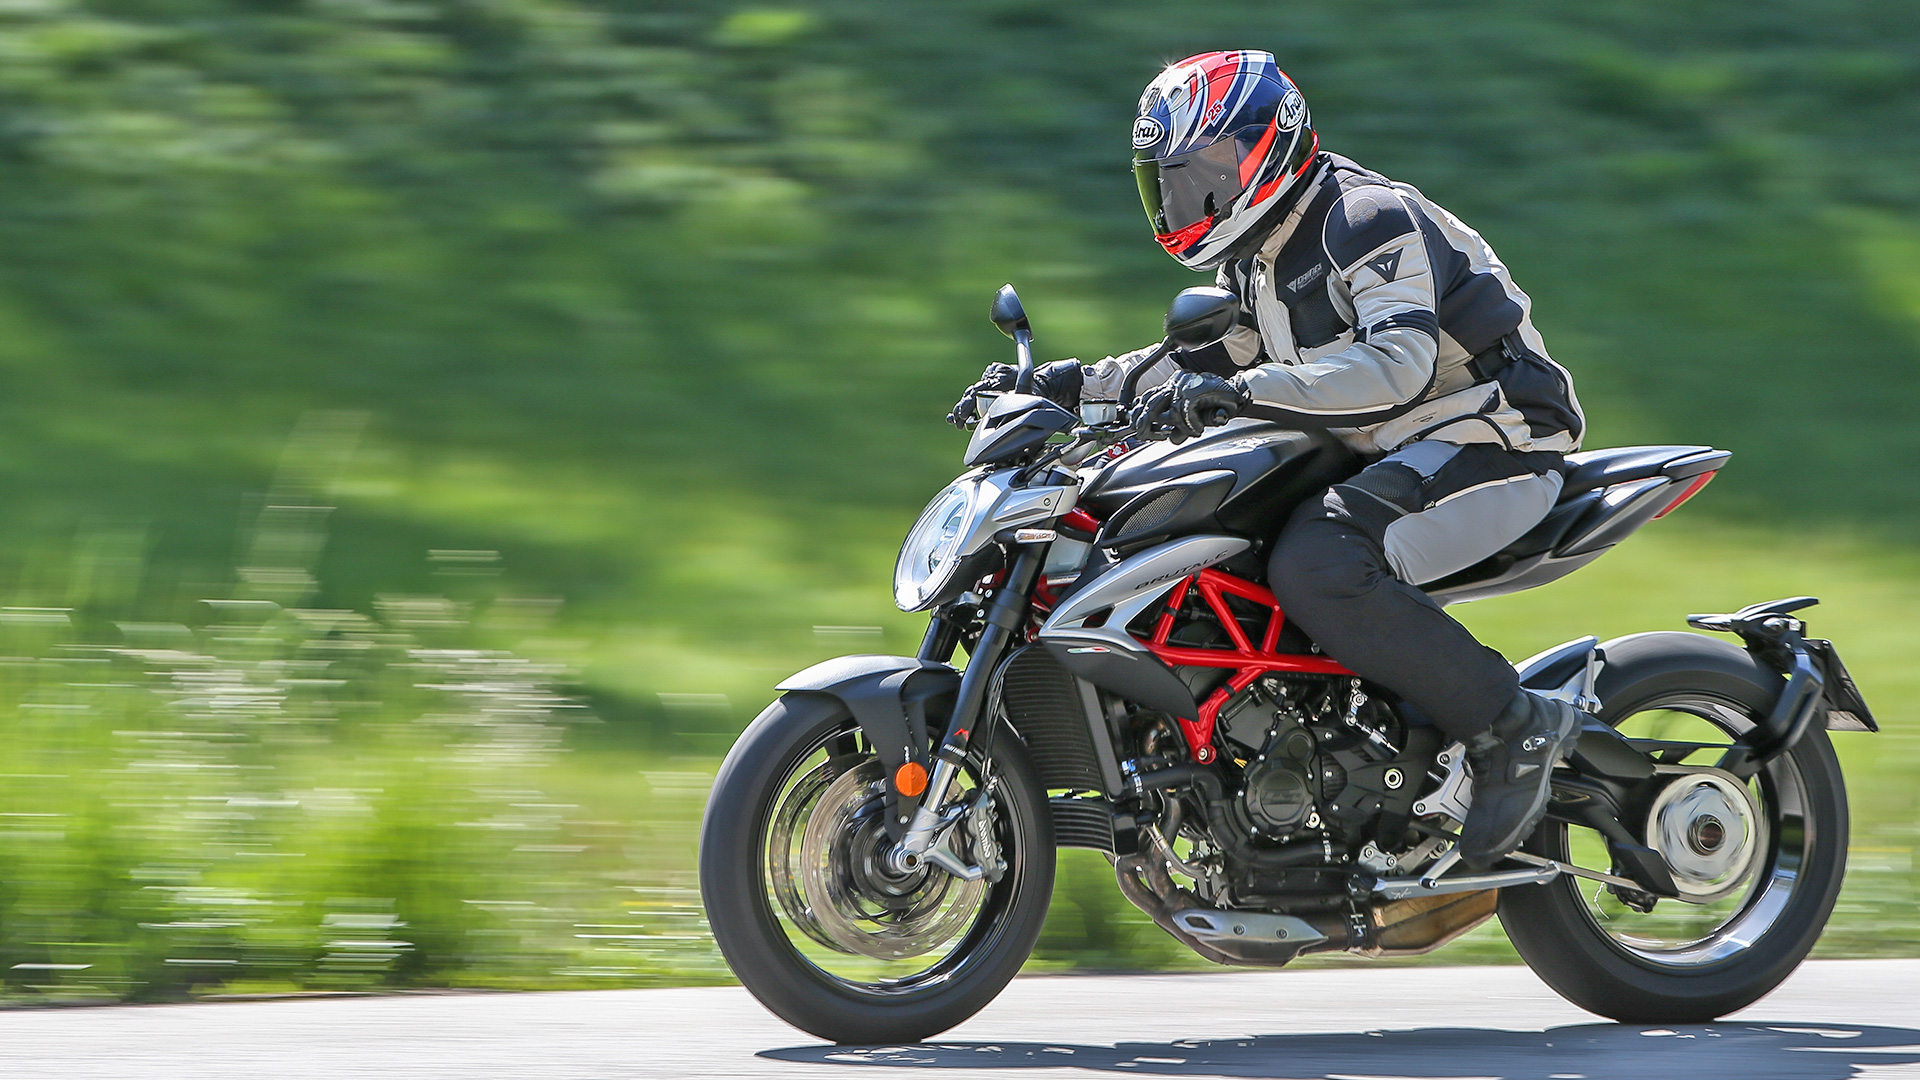 MV Agusta Brutale 2017 800 - Price, Mileage, Reviews ...